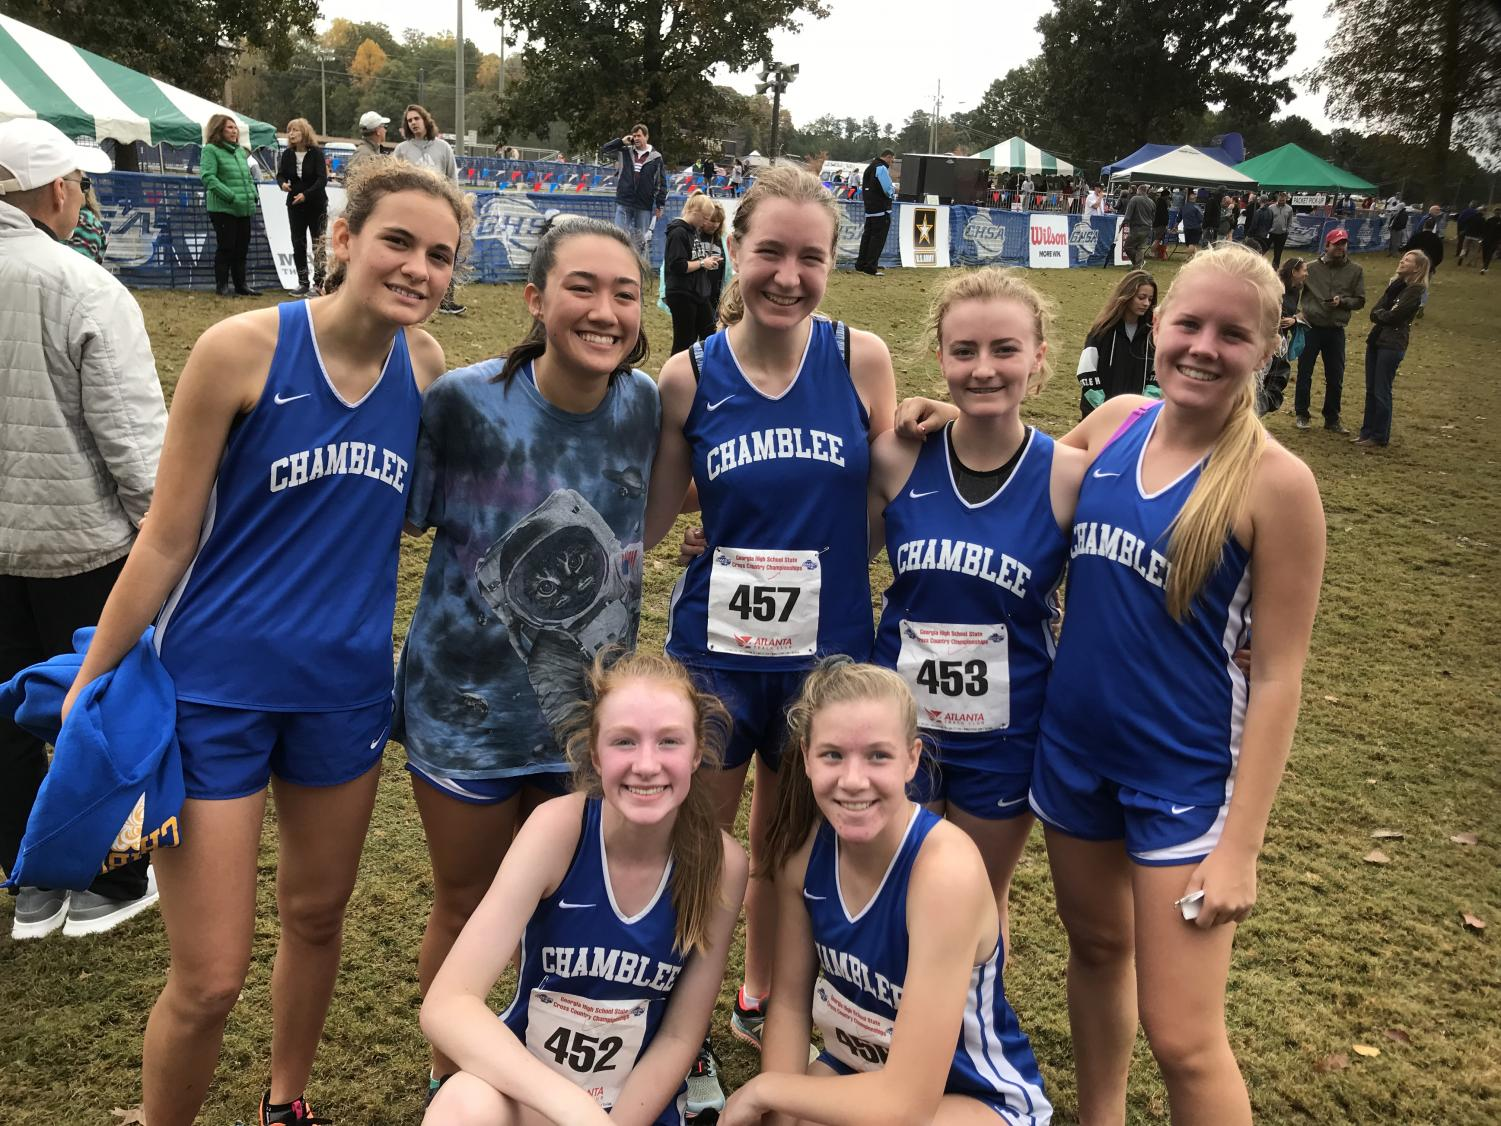 The girls' cross country team. Top row, from left to right: Laila Elmattrawy, Maddie Miller, Sarah Mackey, Hattie Carter, Sami Gudger. Bottom row, left to right: Emily Brown, Stephanie Lynch.